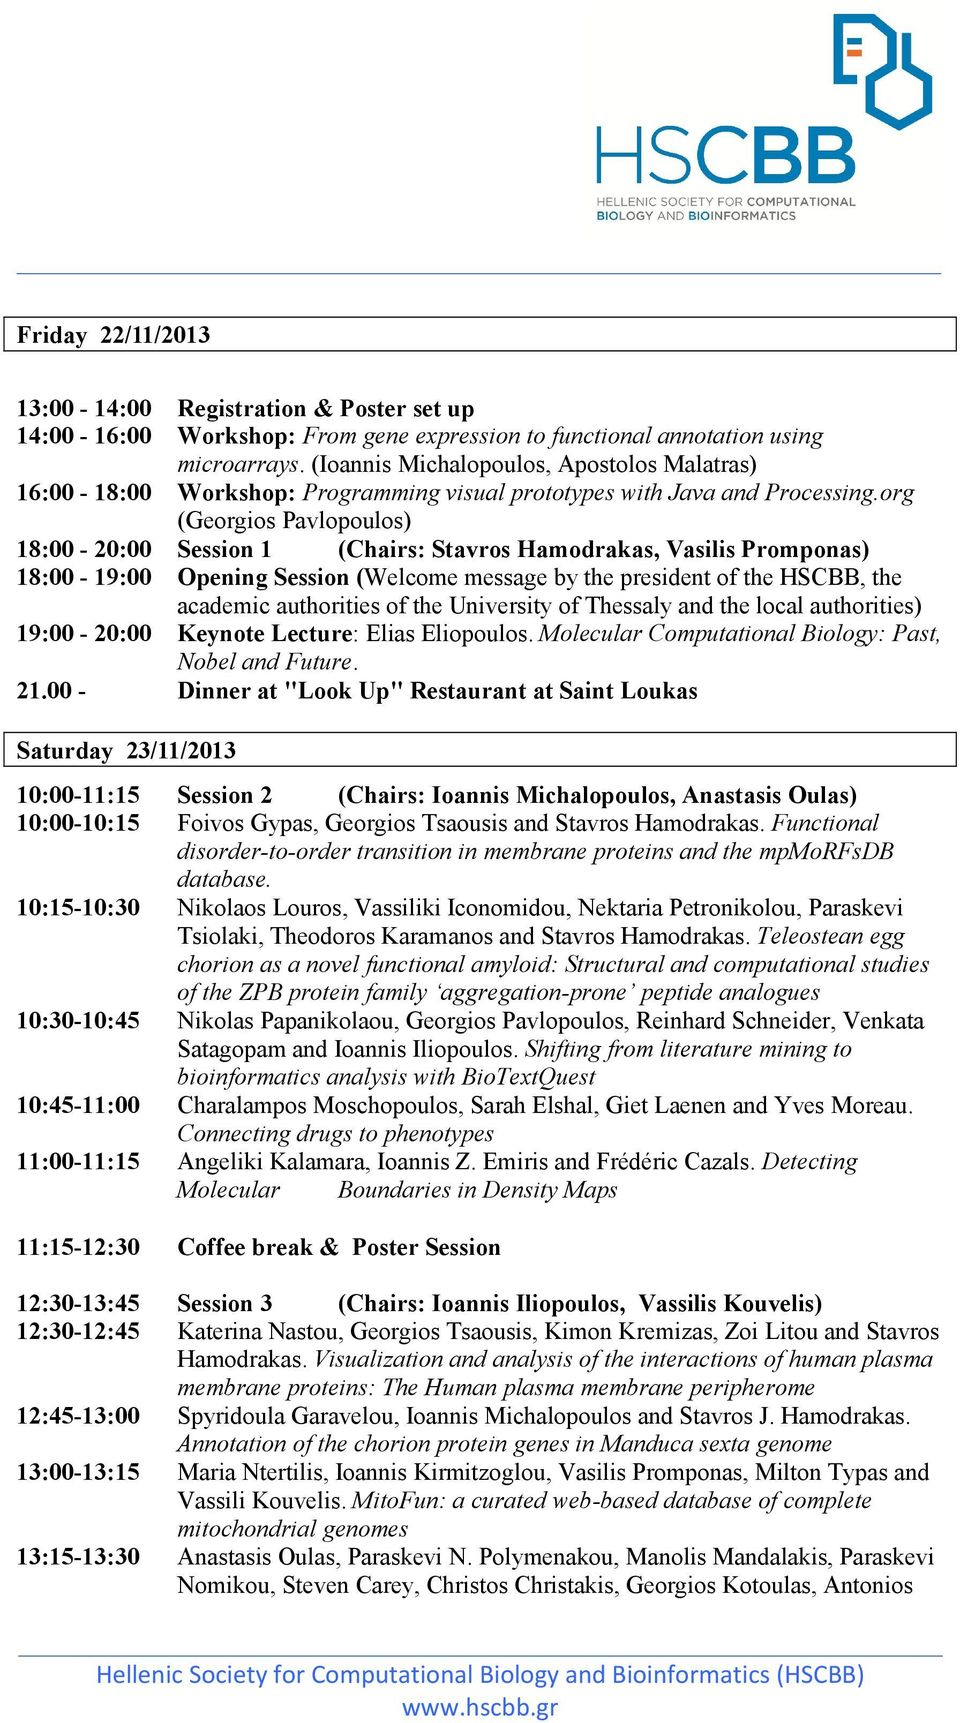 org (Georgios Pavlopoulos) 18:00-20:00 Session 1 (Chairs: Stavros Hamodrakas, Vasilis Promponas) 18:00-19:00 Opening Session (Welcome message by the president of the HSCBB, the academic authorities